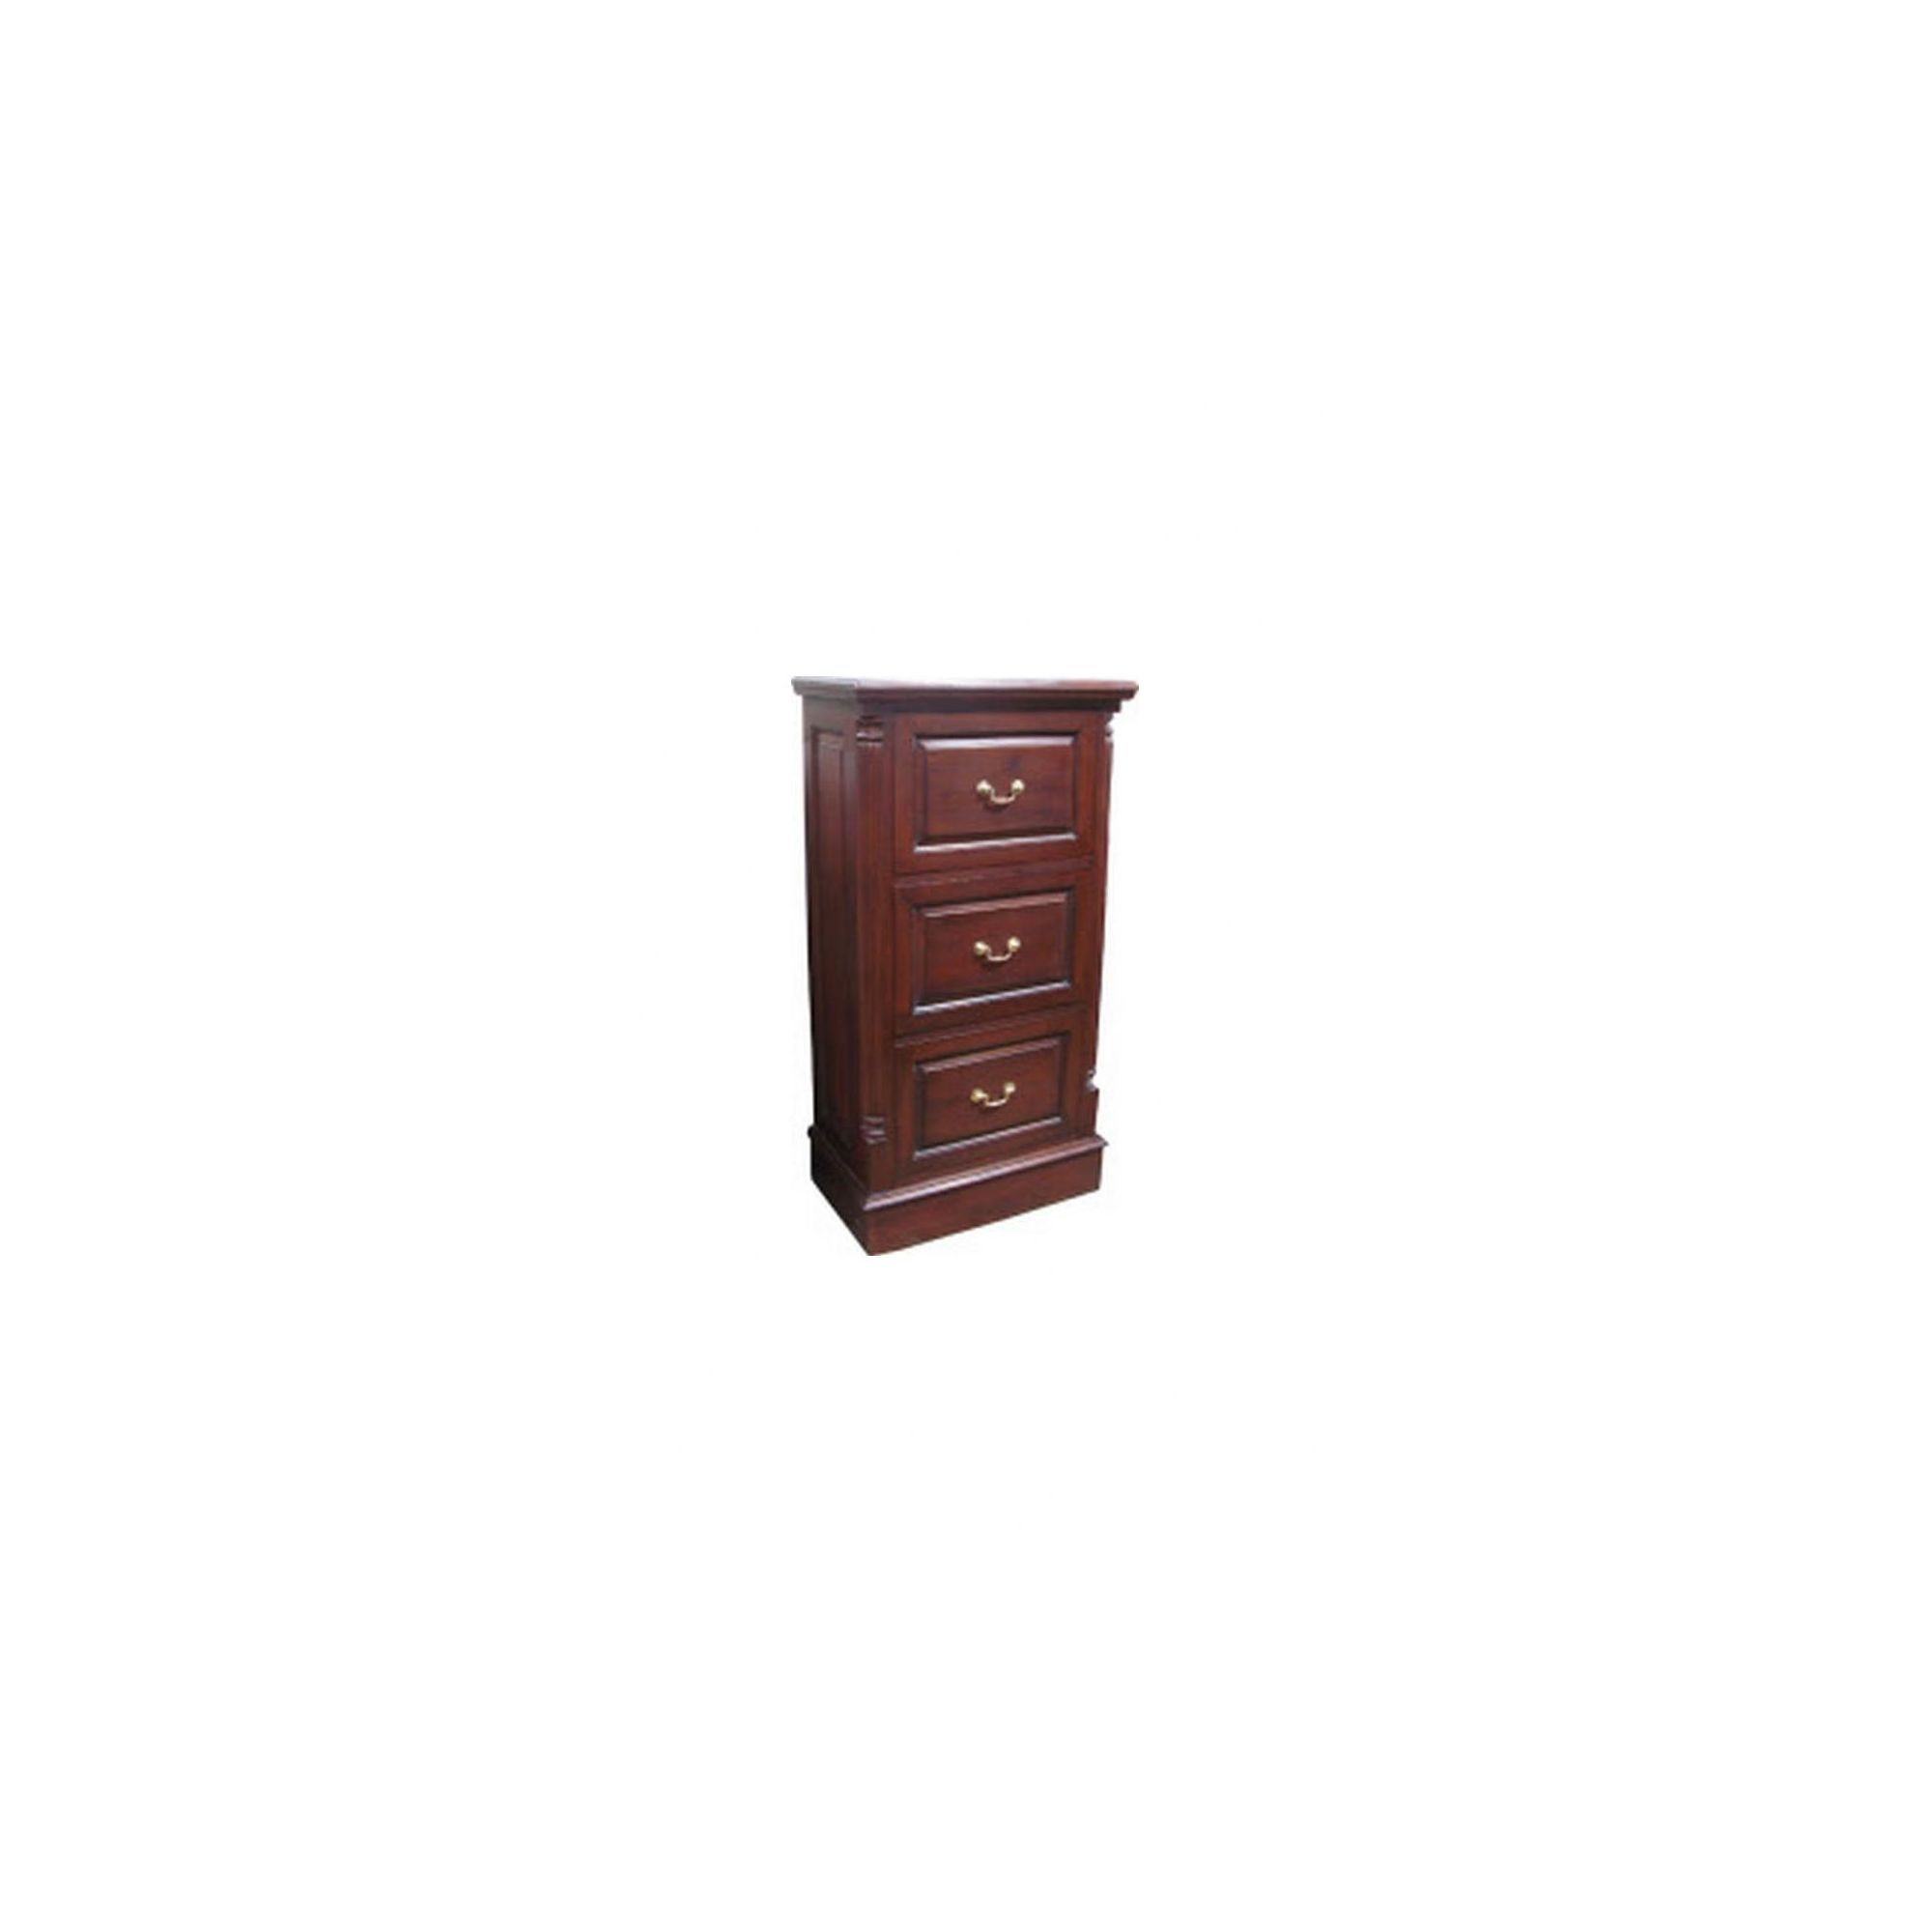 Lock stock and barrel Mahogany 3 Drawer Filing Cabinet with Brass Handles in Mahogany at Tesco Direct